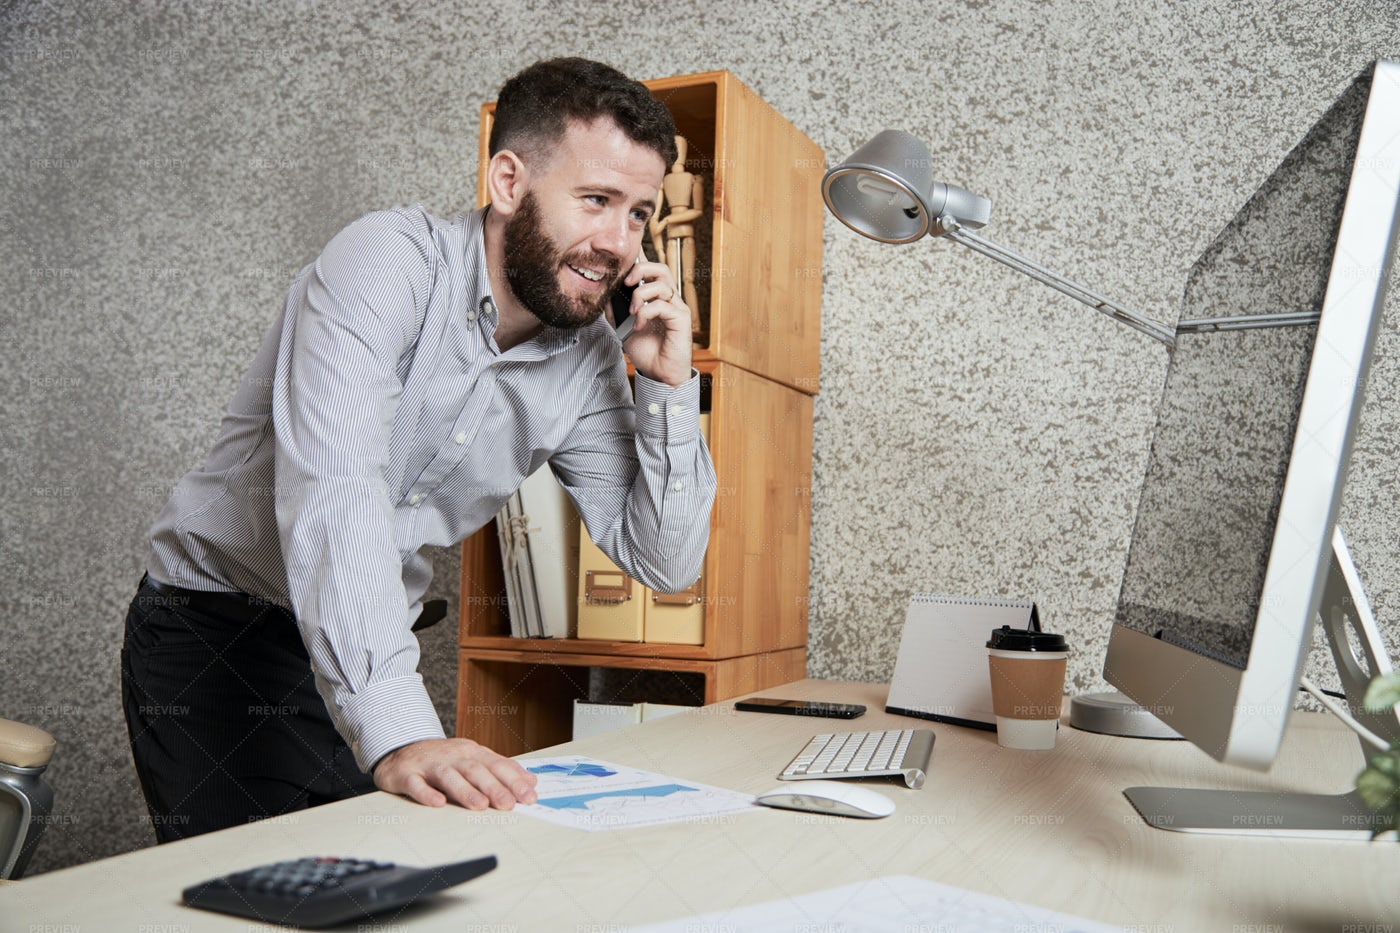 Businessman Discussing Work On The: Stock Photos